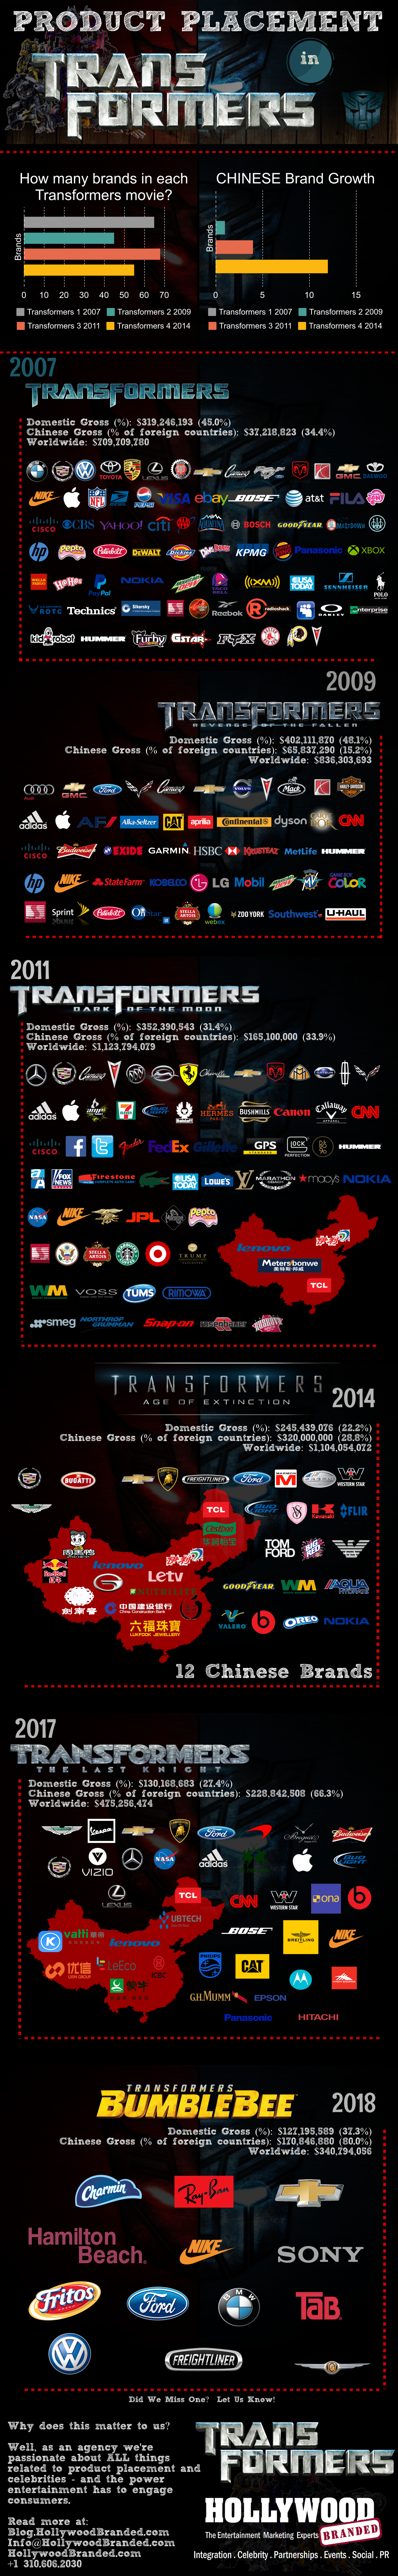 Transformers Infographic Update